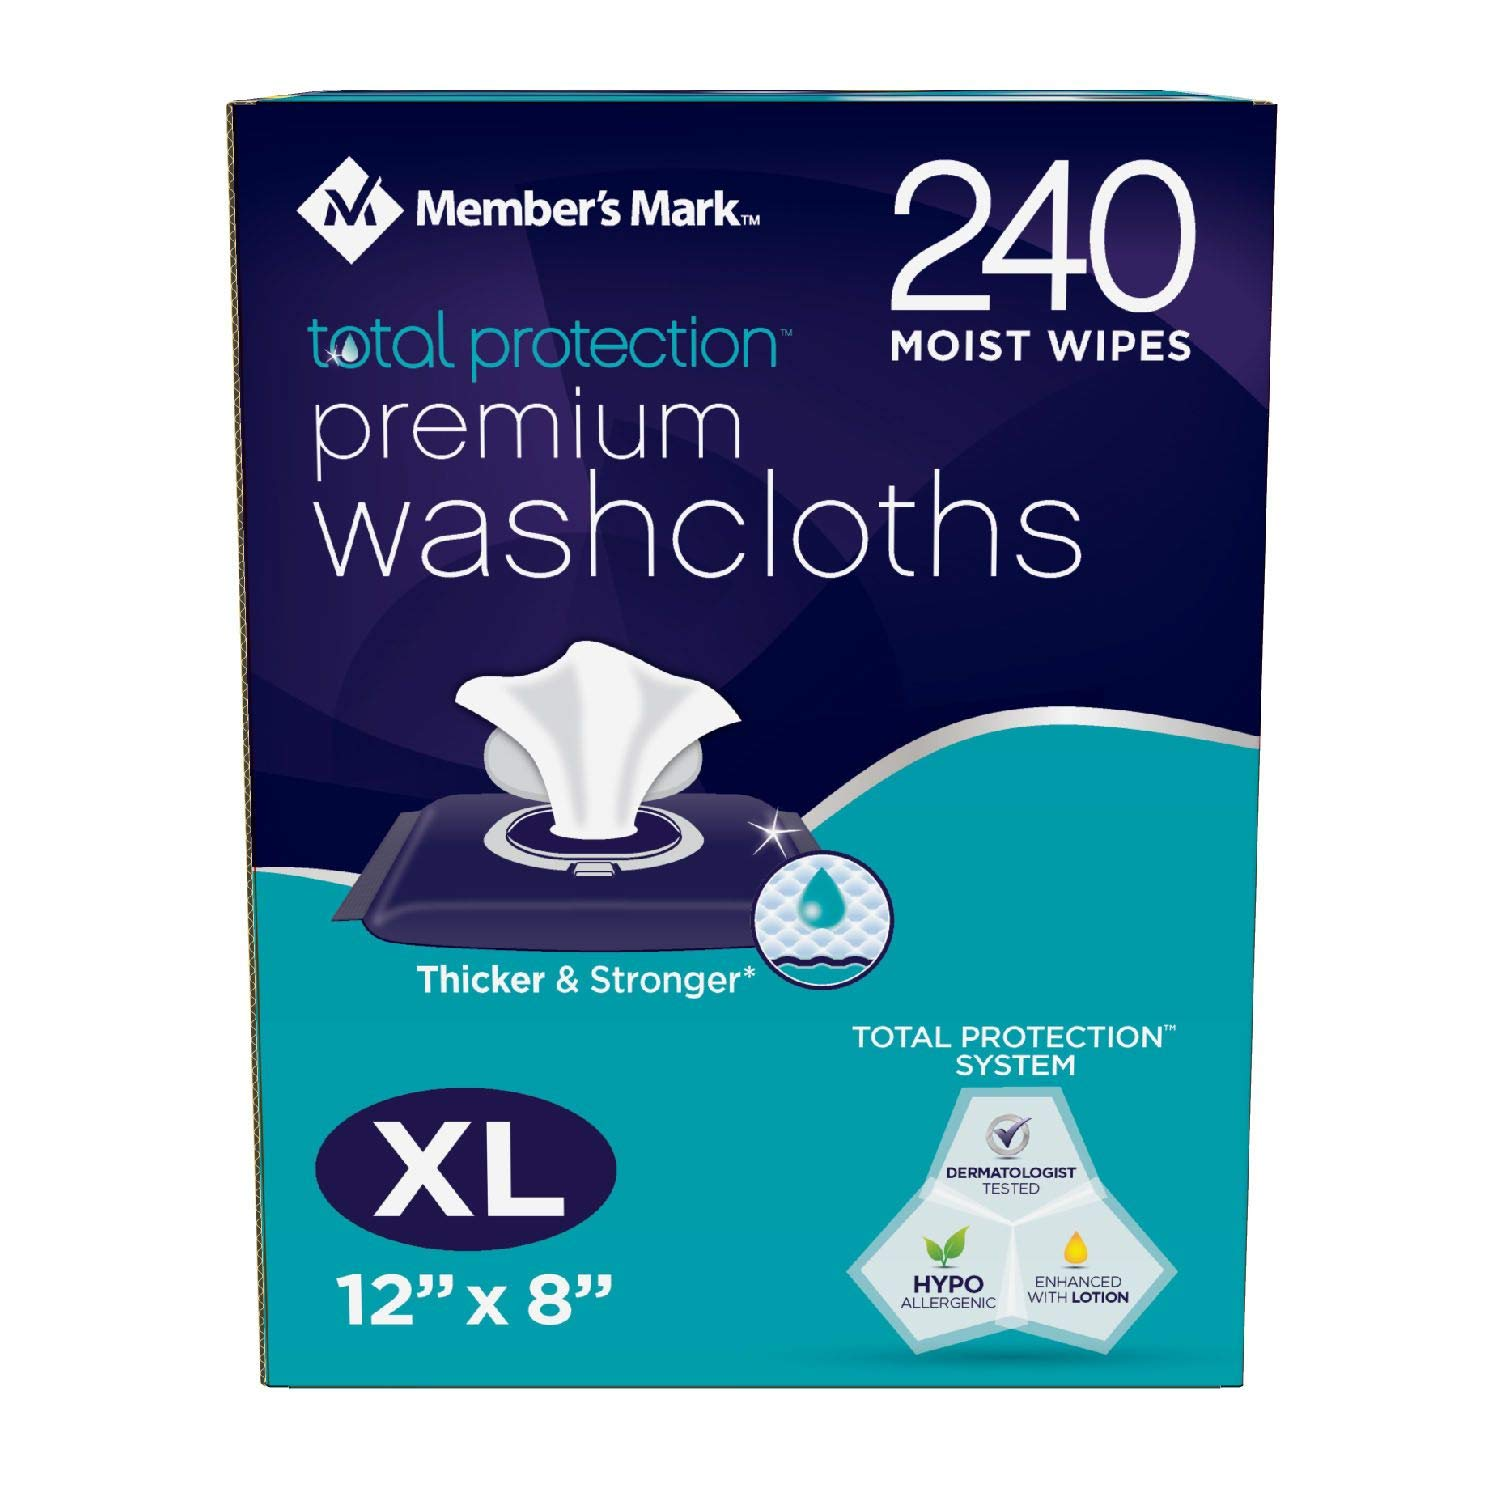 Members Mark Adult Premium VwxqM Disposable Washcloth Value Pack, 240 Count (3 Pack)